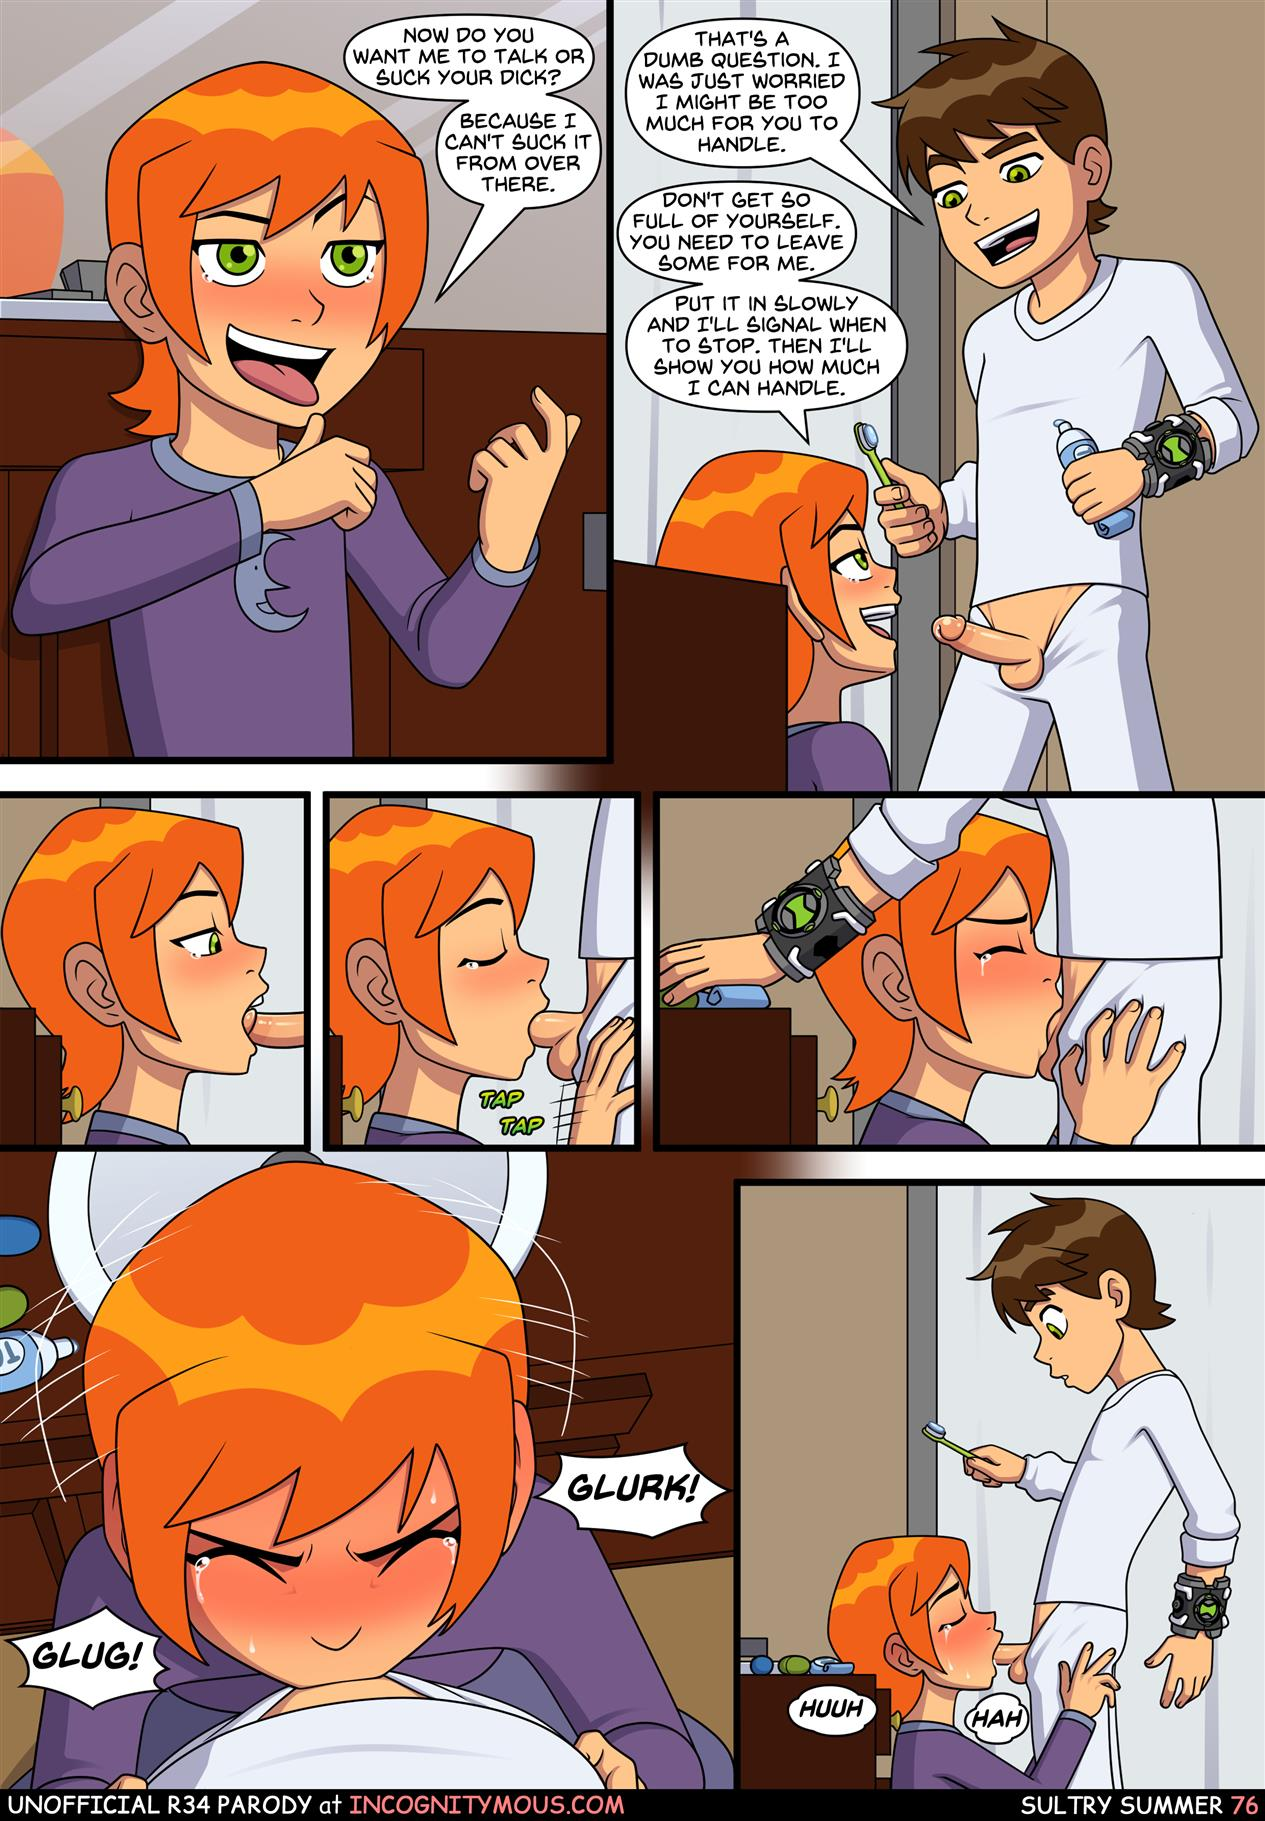 Sultry Summer (Ben 10) [Incognitymous] - Foto 77